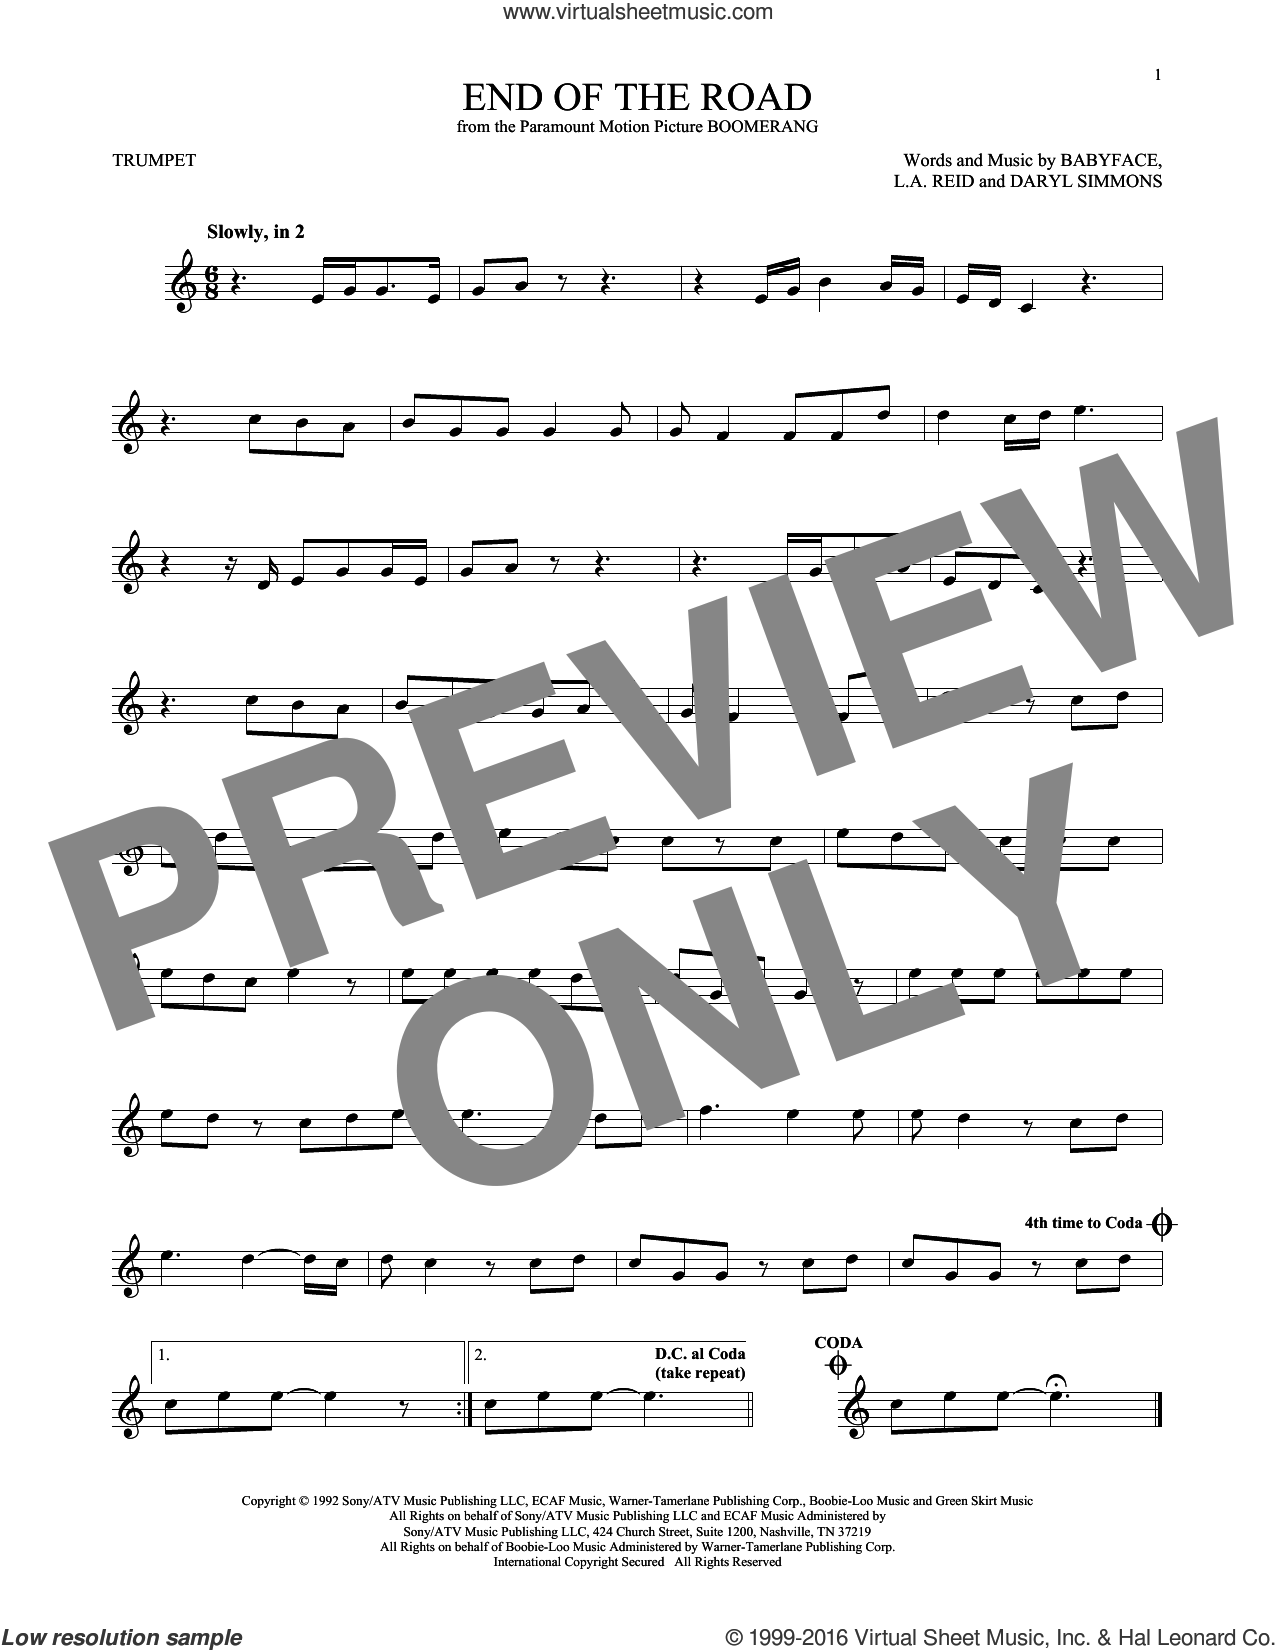 End Of The Road sheet music for trumpet solo by Boyz II Men, Babyface, DARYL SIMMONS and L.A. Reid, intermediate skill level